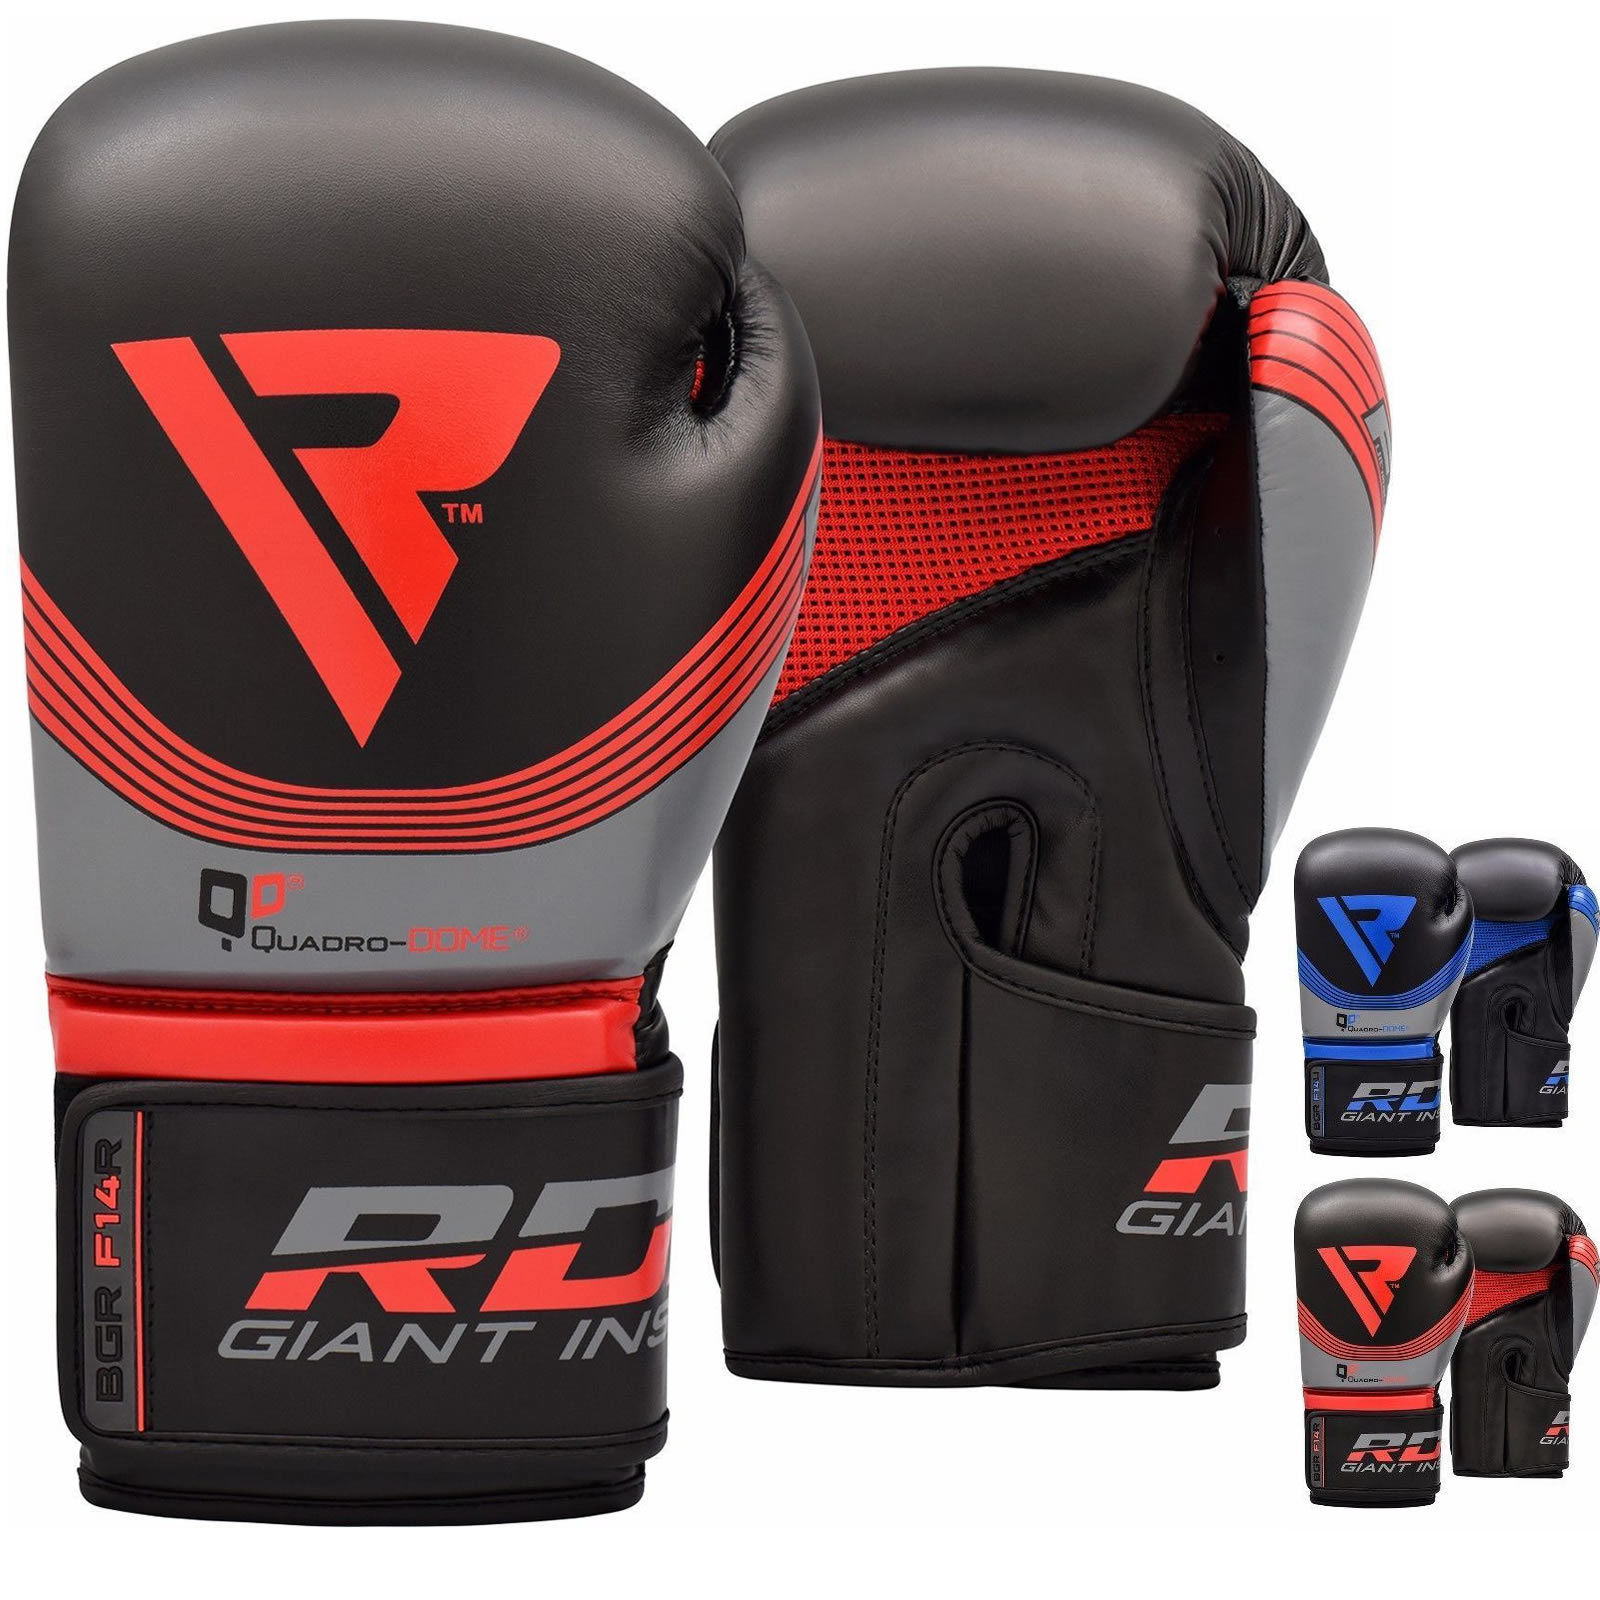 RDX Boxing Practice Training F14 Gloves Punching Bag Sparring Glove MMA Combat